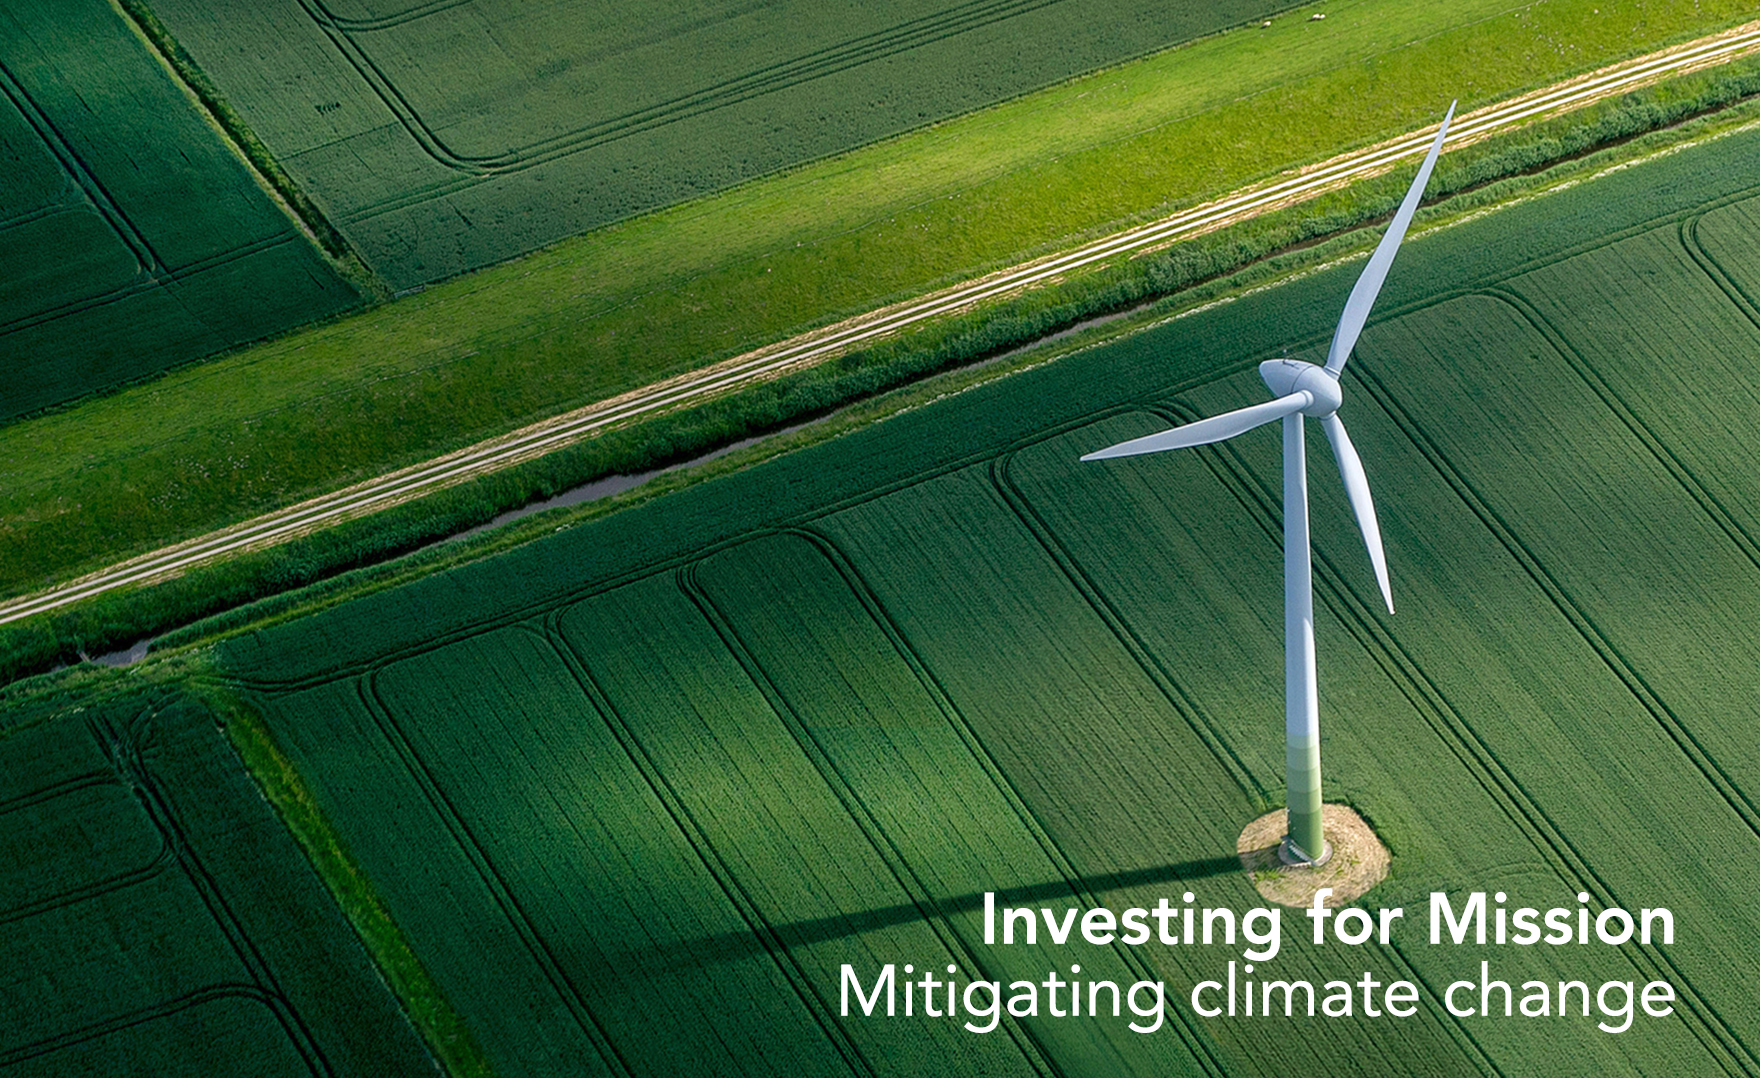 Investing for Mission | Mitigating Climate Change